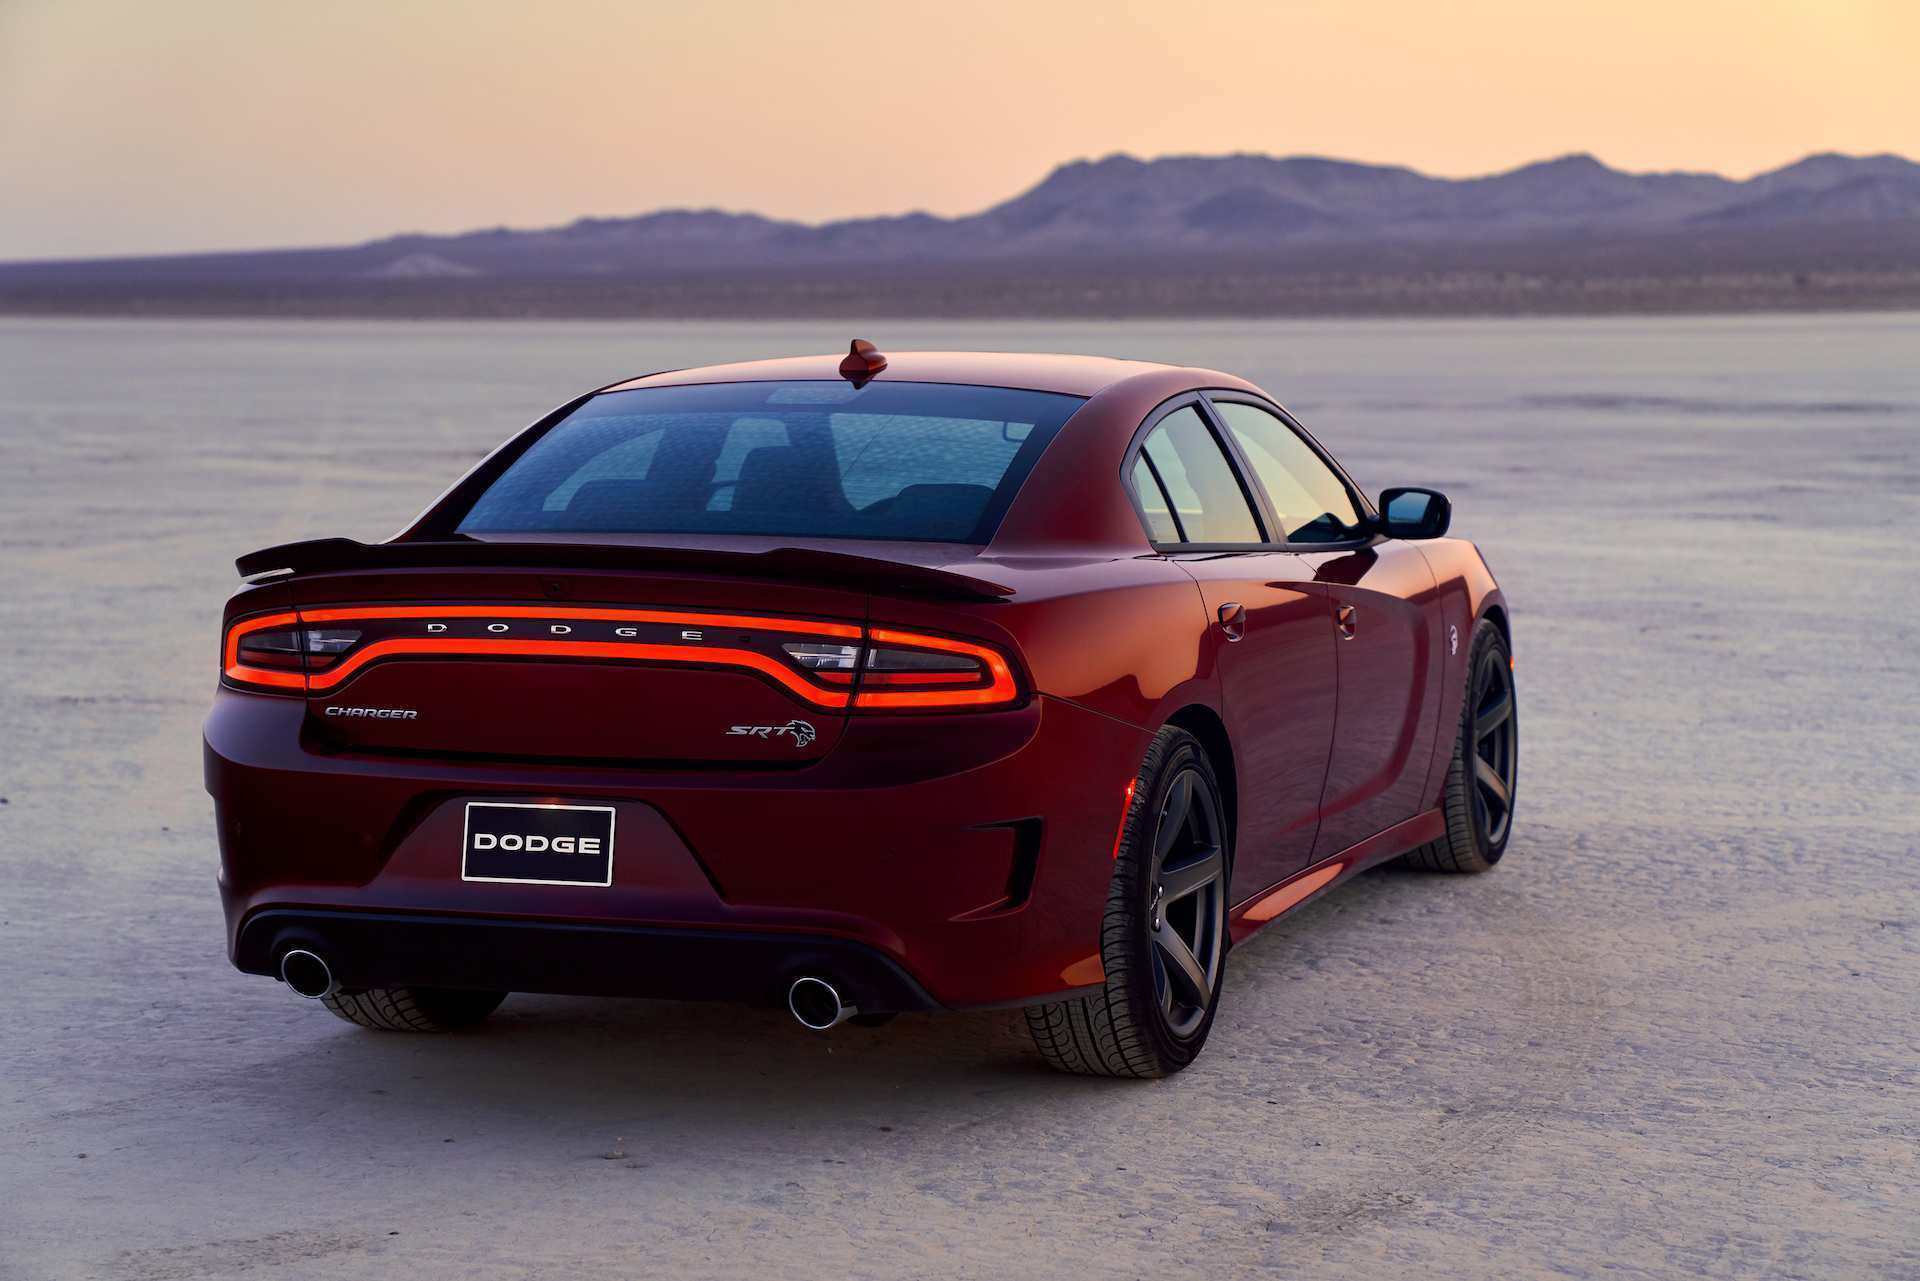 68 The 2020 Dodge Challenger Hellcat Price And Review